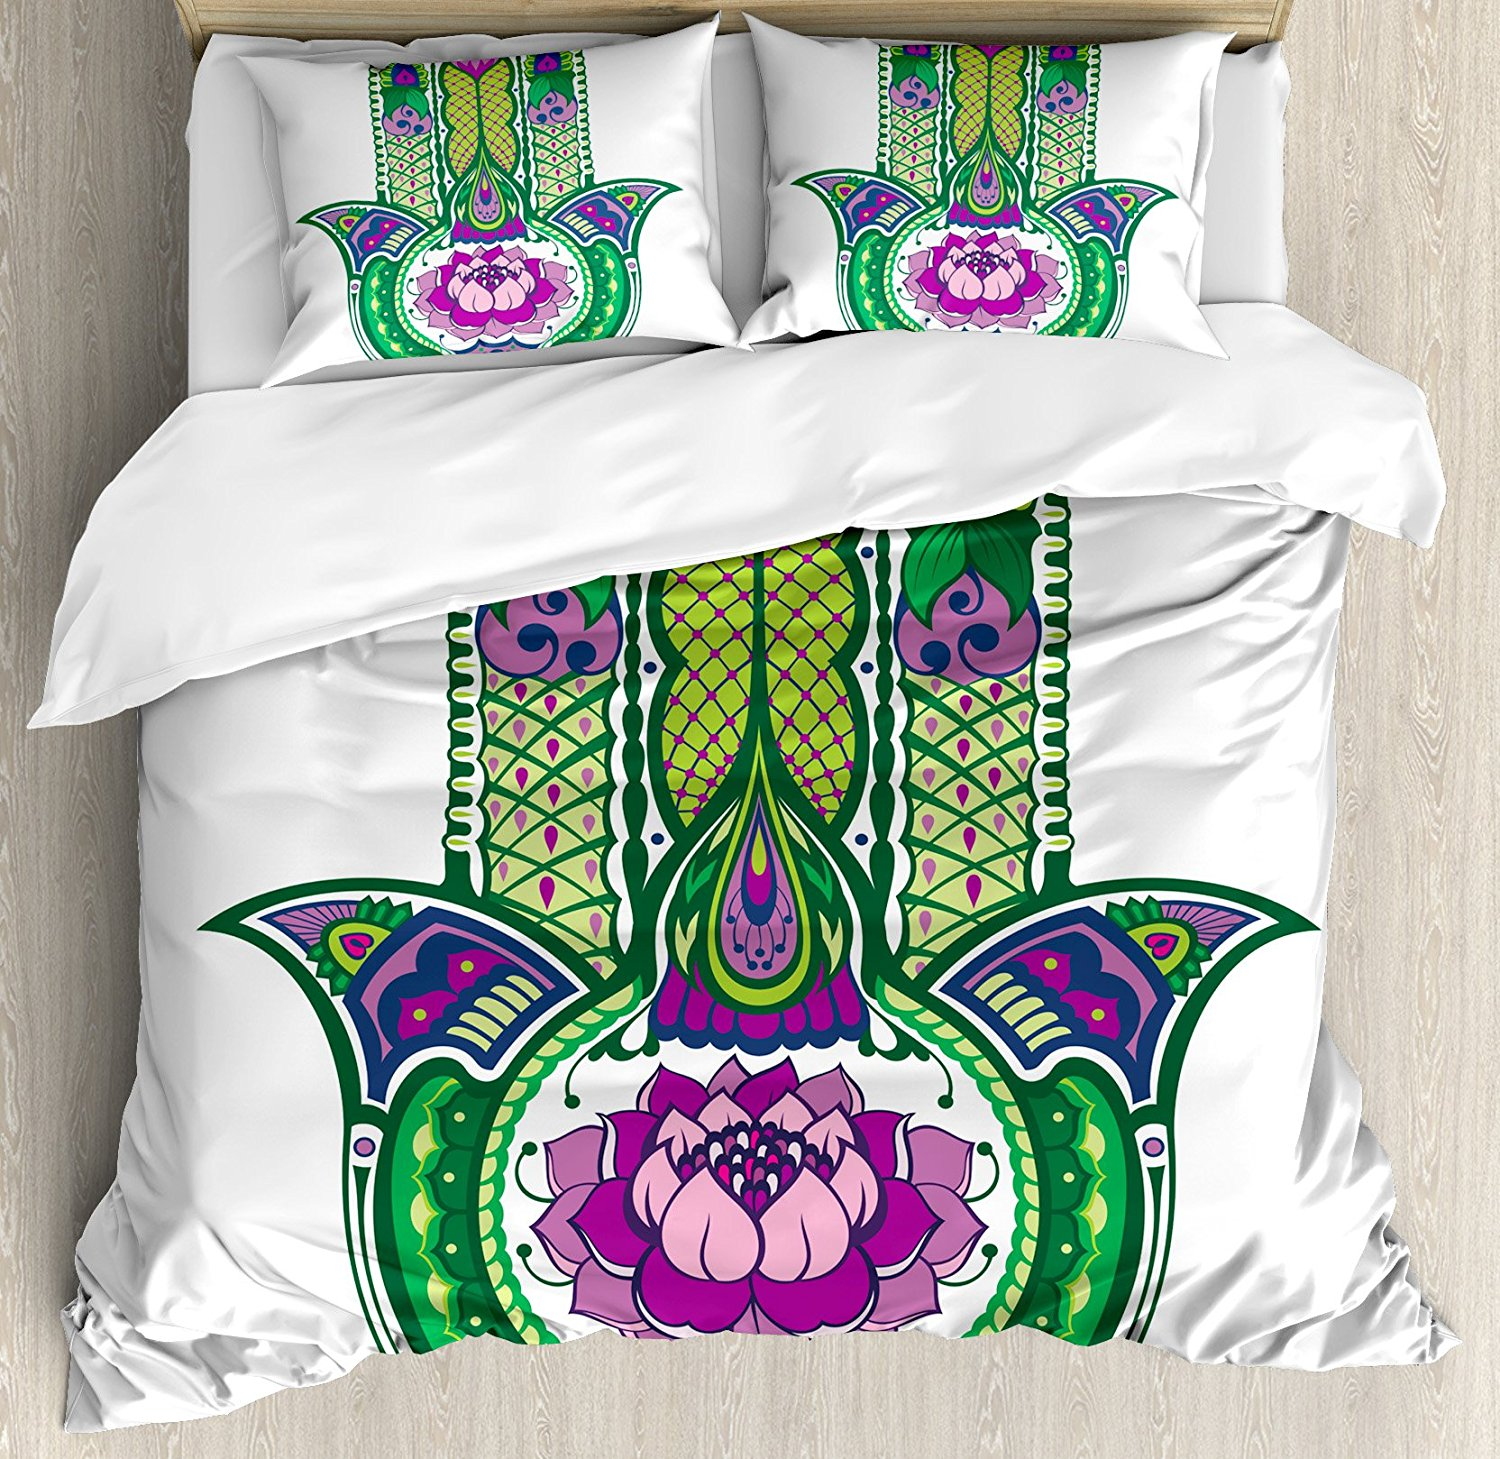 Duvet Cover Set Nature Theme Ancient Hamsa Hand With Lotus Flower Motif In  The Palm Tribal Graphic 4 Piece Bedding Set In Bedding Sets From Home U0026  Garden On ...